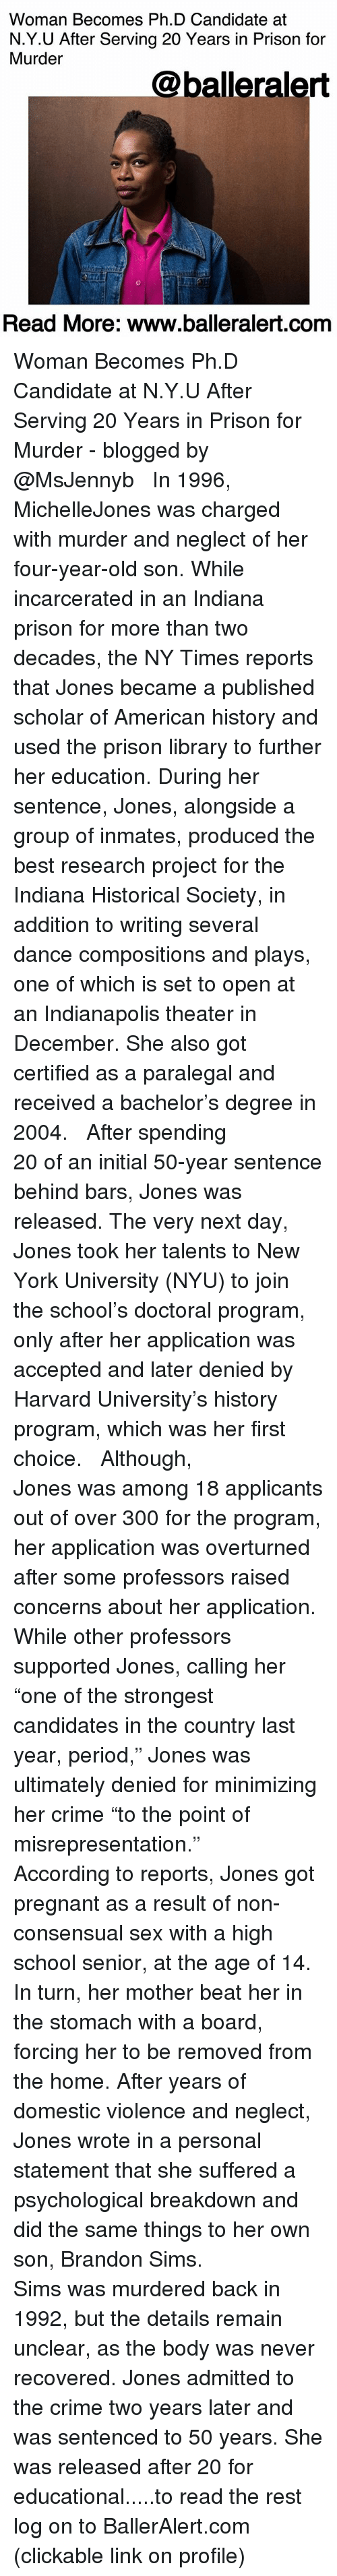 "Crime, Memes, and New York: Woman Becomes Ph.D Candidate at  N.Y.U After Serving 20 Years in Prison for  Murder  @balleralert  Read More: www.balleralert.comm Woman Becomes Ph.D Candidate at N.Y.U After Serving 20 Years in Prison for Murder - blogged by @MsJennyb ⠀⠀⠀⠀⠀⠀⠀ ⠀⠀⠀⠀⠀⠀⠀ In 1996, MichelleJones was charged with murder and neglect of her four-year-old son. While incarcerated in an Indiana prison for more than two decades, the NY Times reports that Jones became a published scholar of American history and used the prison library to further her education. During her sentence, Jones, alongside a group of inmates, produced the best research project for the Indiana Historical Society, in addition to writing several dance compositions and plays, one of which is set to open at an Indianapolis theater in December. She also got certified as a paralegal and received a bachelor's degree in 2004. ⠀⠀⠀⠀⠀⠀⠀ ⠀⠀⠀⠀⠀⠀⠀ After spending 20 of an initial 50-year sentence behind bars, Jones was released. The very next day, Jones took her talents to New York University (NYU) to join the school's doctoral program, only after her application was accepted and later denied by Harvard University's history program, which was her first choice. ⠀⠀⠀⠀⠀⠀⠀ ⠀⠀⠀⠀⠀⠀⠀ Although, Jones was among 18 applicants out of over 300 for the program, her application was overturned after some professors raised concerns about her application. While other professors supported Jones, calling her ""one of the strongest candidates in the country last year, period,"" Jones was ultimately denied for minimizing her crime ""to the point of misrepresentation."" ⠀⠀⠀⠀⠀⠀⠀ ⠀⠀⠀⠀⠀⠀⠀ According to reports, Jones got pregnant as a result of non-consensual sex with a high school senior, at the age of 14. In turn, her mother beat her in the stomach with a board, forcing her to be removed from the home. After years of domestic violence and neglect, Jones wrote in a personal statement that she suffered a psychological breakdown and did the same things to her own son, Brandon Sims. ⠀⠀⠀⠀⠀⠀⠀ ⠀⠀⠀⠀⠀⠀⠀ Sims was murdered back in 1992, but the details remain unclear, as the body was never recovered. Jones admitted to the crime two years later and was sentenced to 50 years. She was released after 20 for educational.....to read the rest log on to BallerAlert.com (clickable link on profile)"